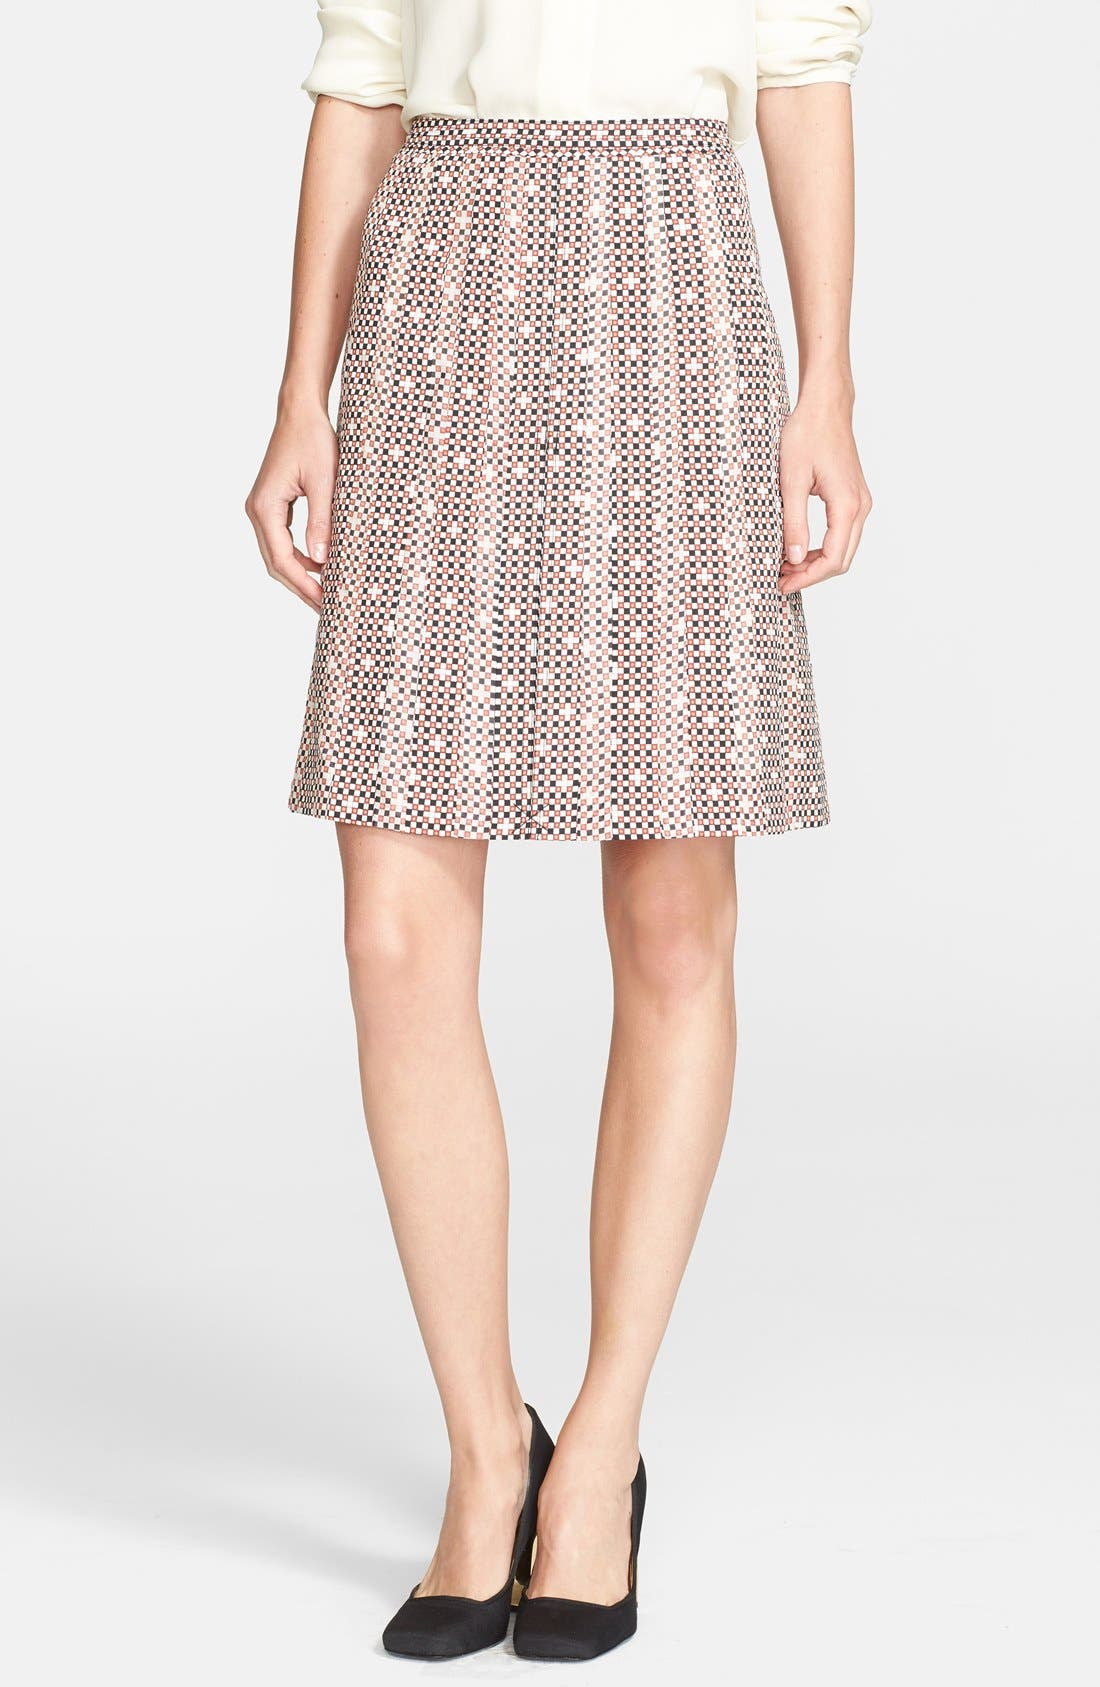 Alternate Image 1 Selected - Tory Burch 'Floria' Print Stretch Silk Skirt